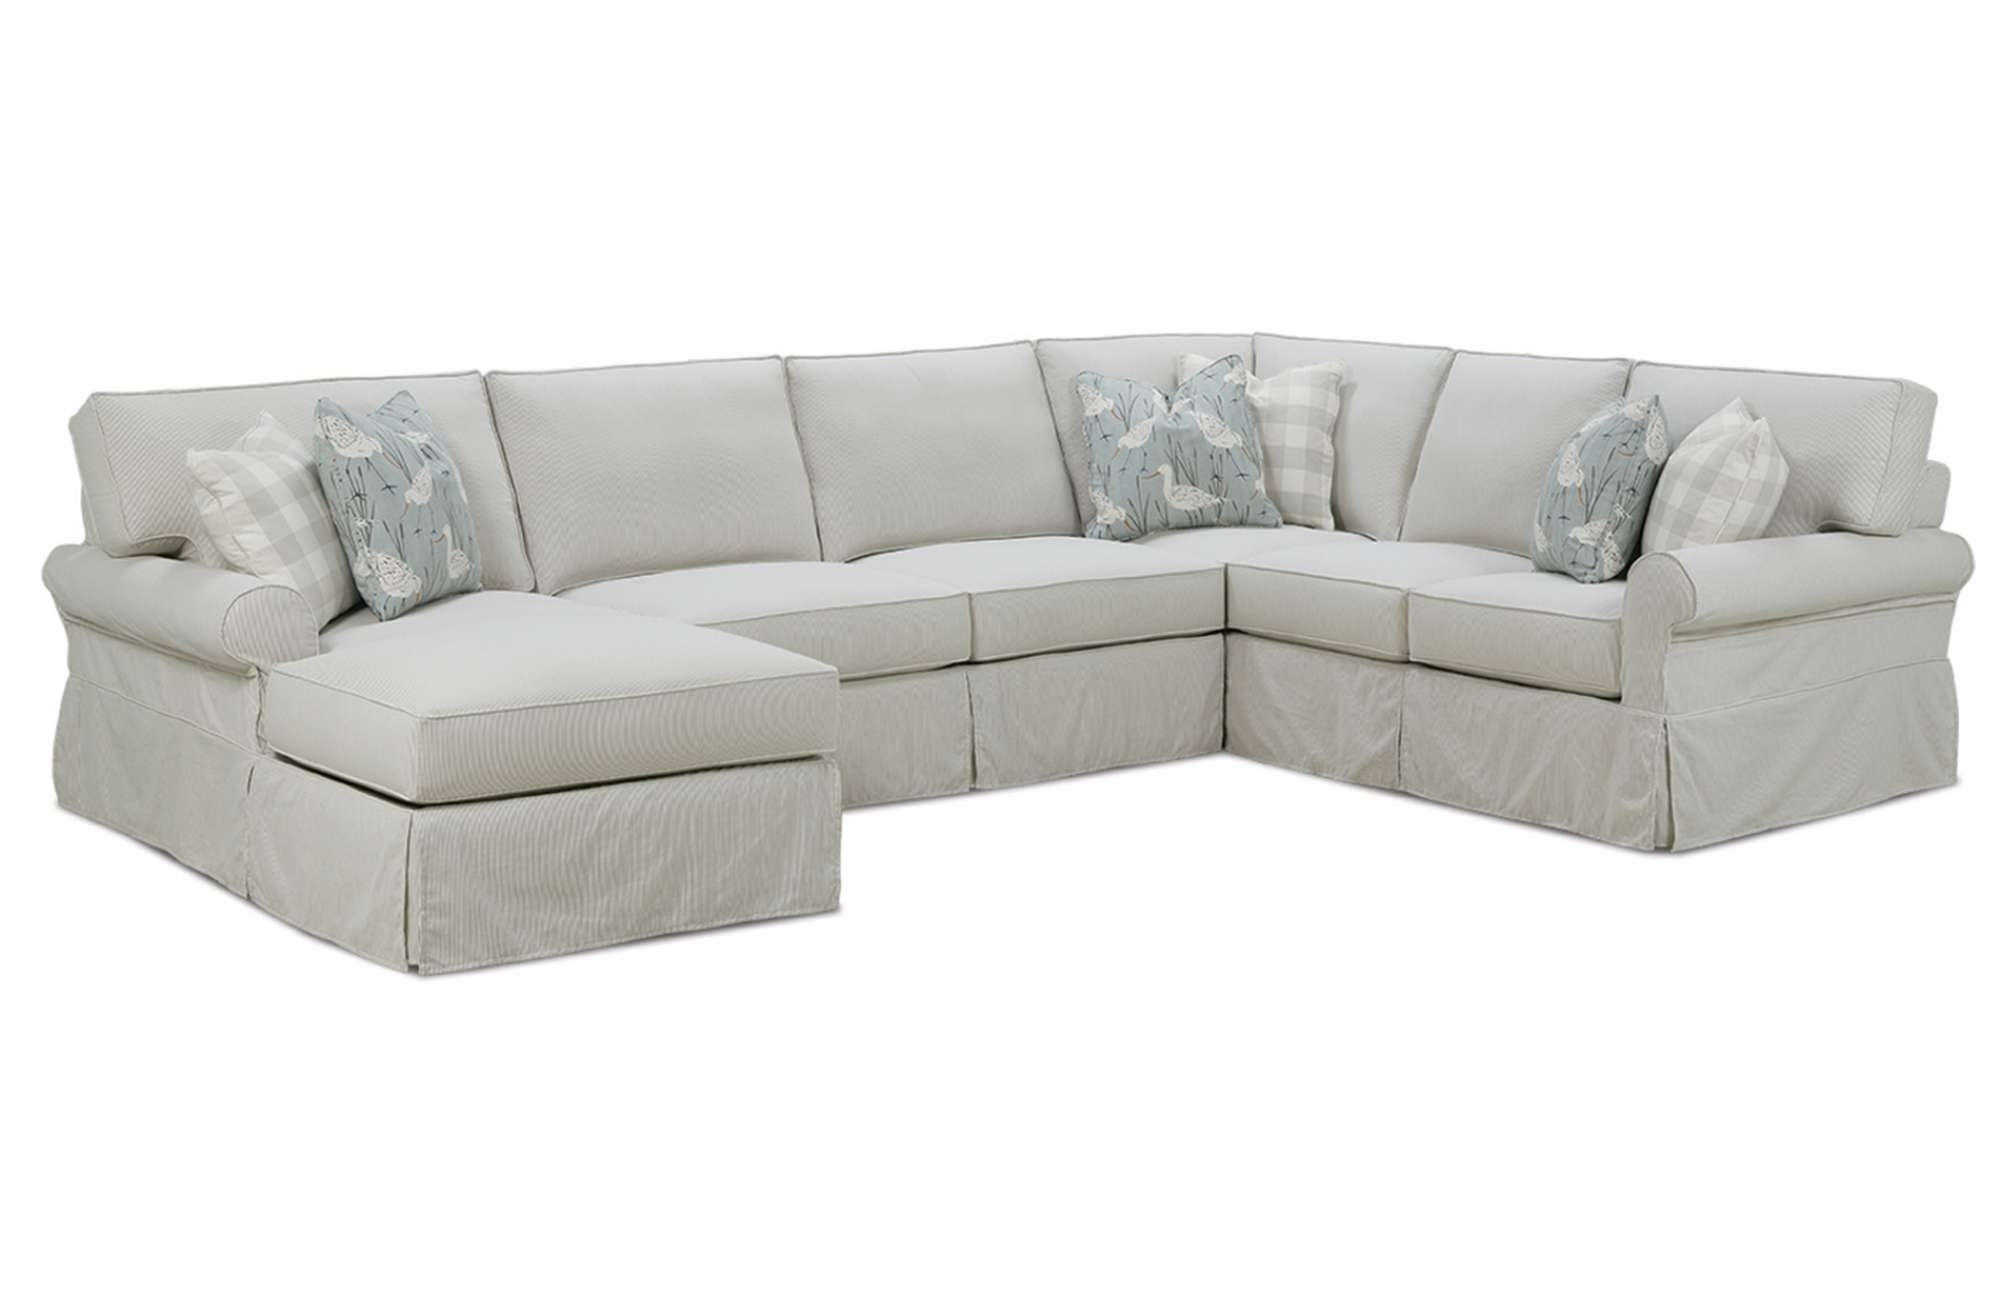 Recent Easton Slipcover Sectionalrowe Furniture With Regard To Furniture Row Sectional Sofas (View 4 of 20)